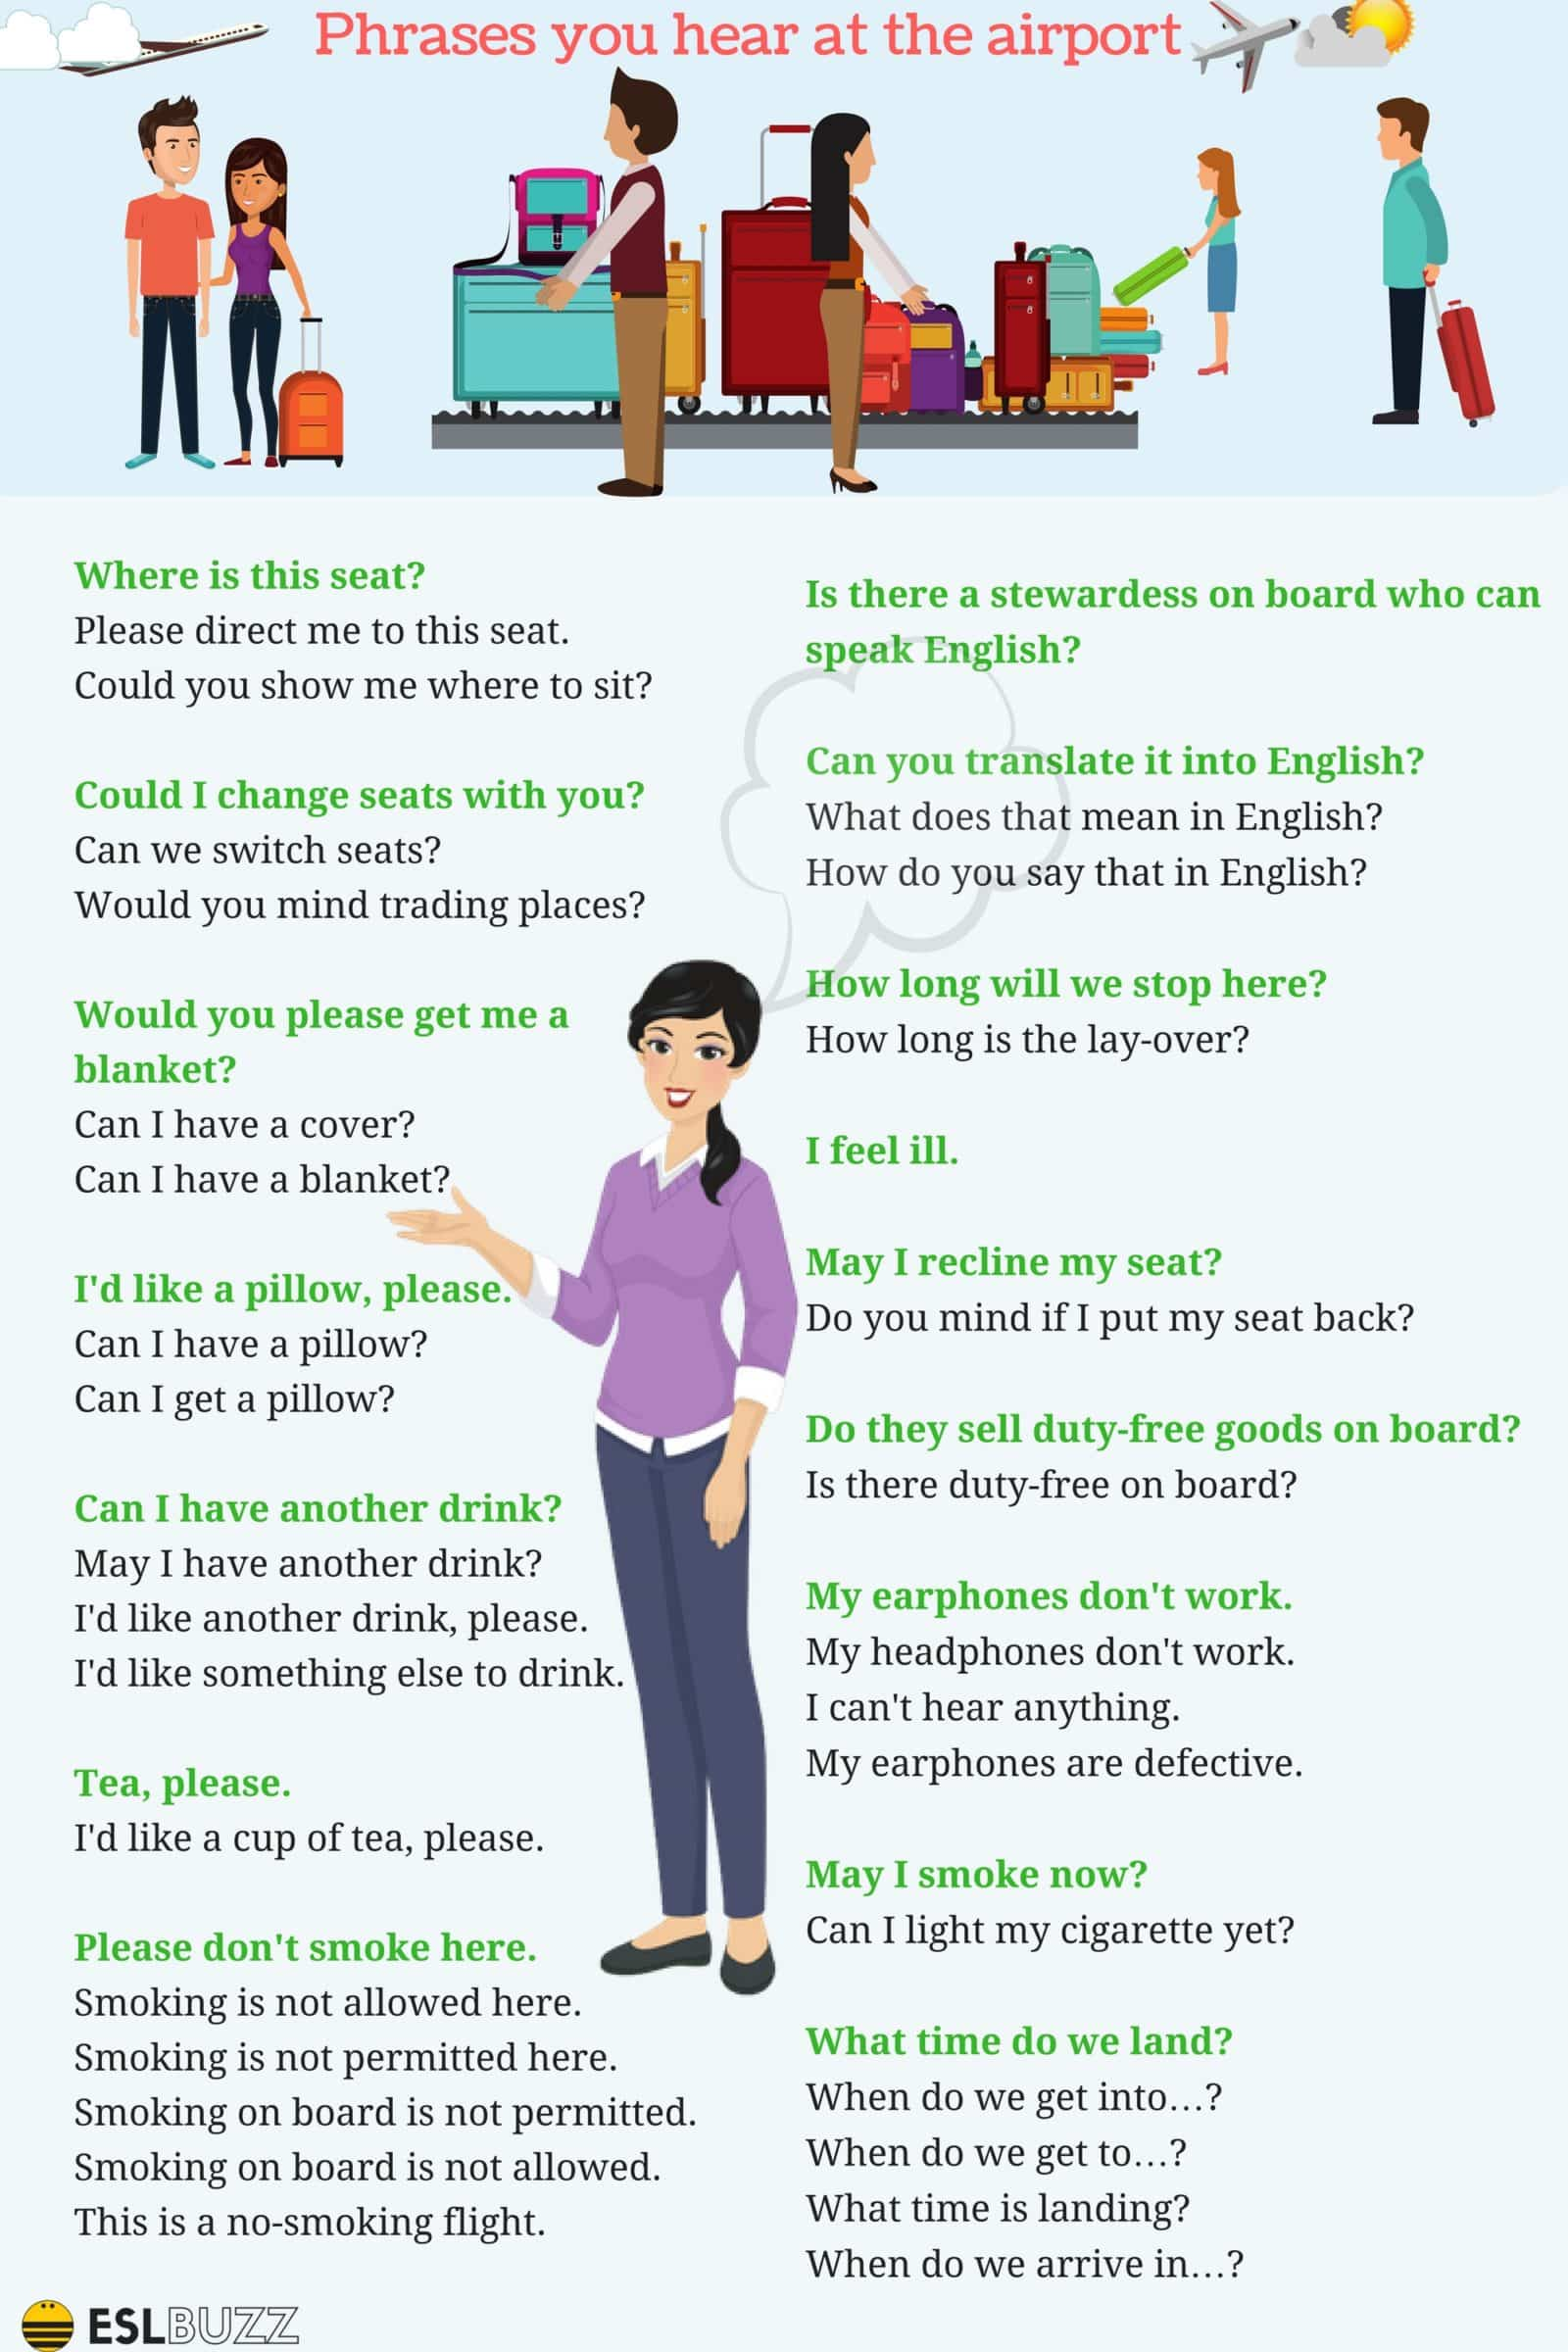 Common Phrases You Hear At The Airport